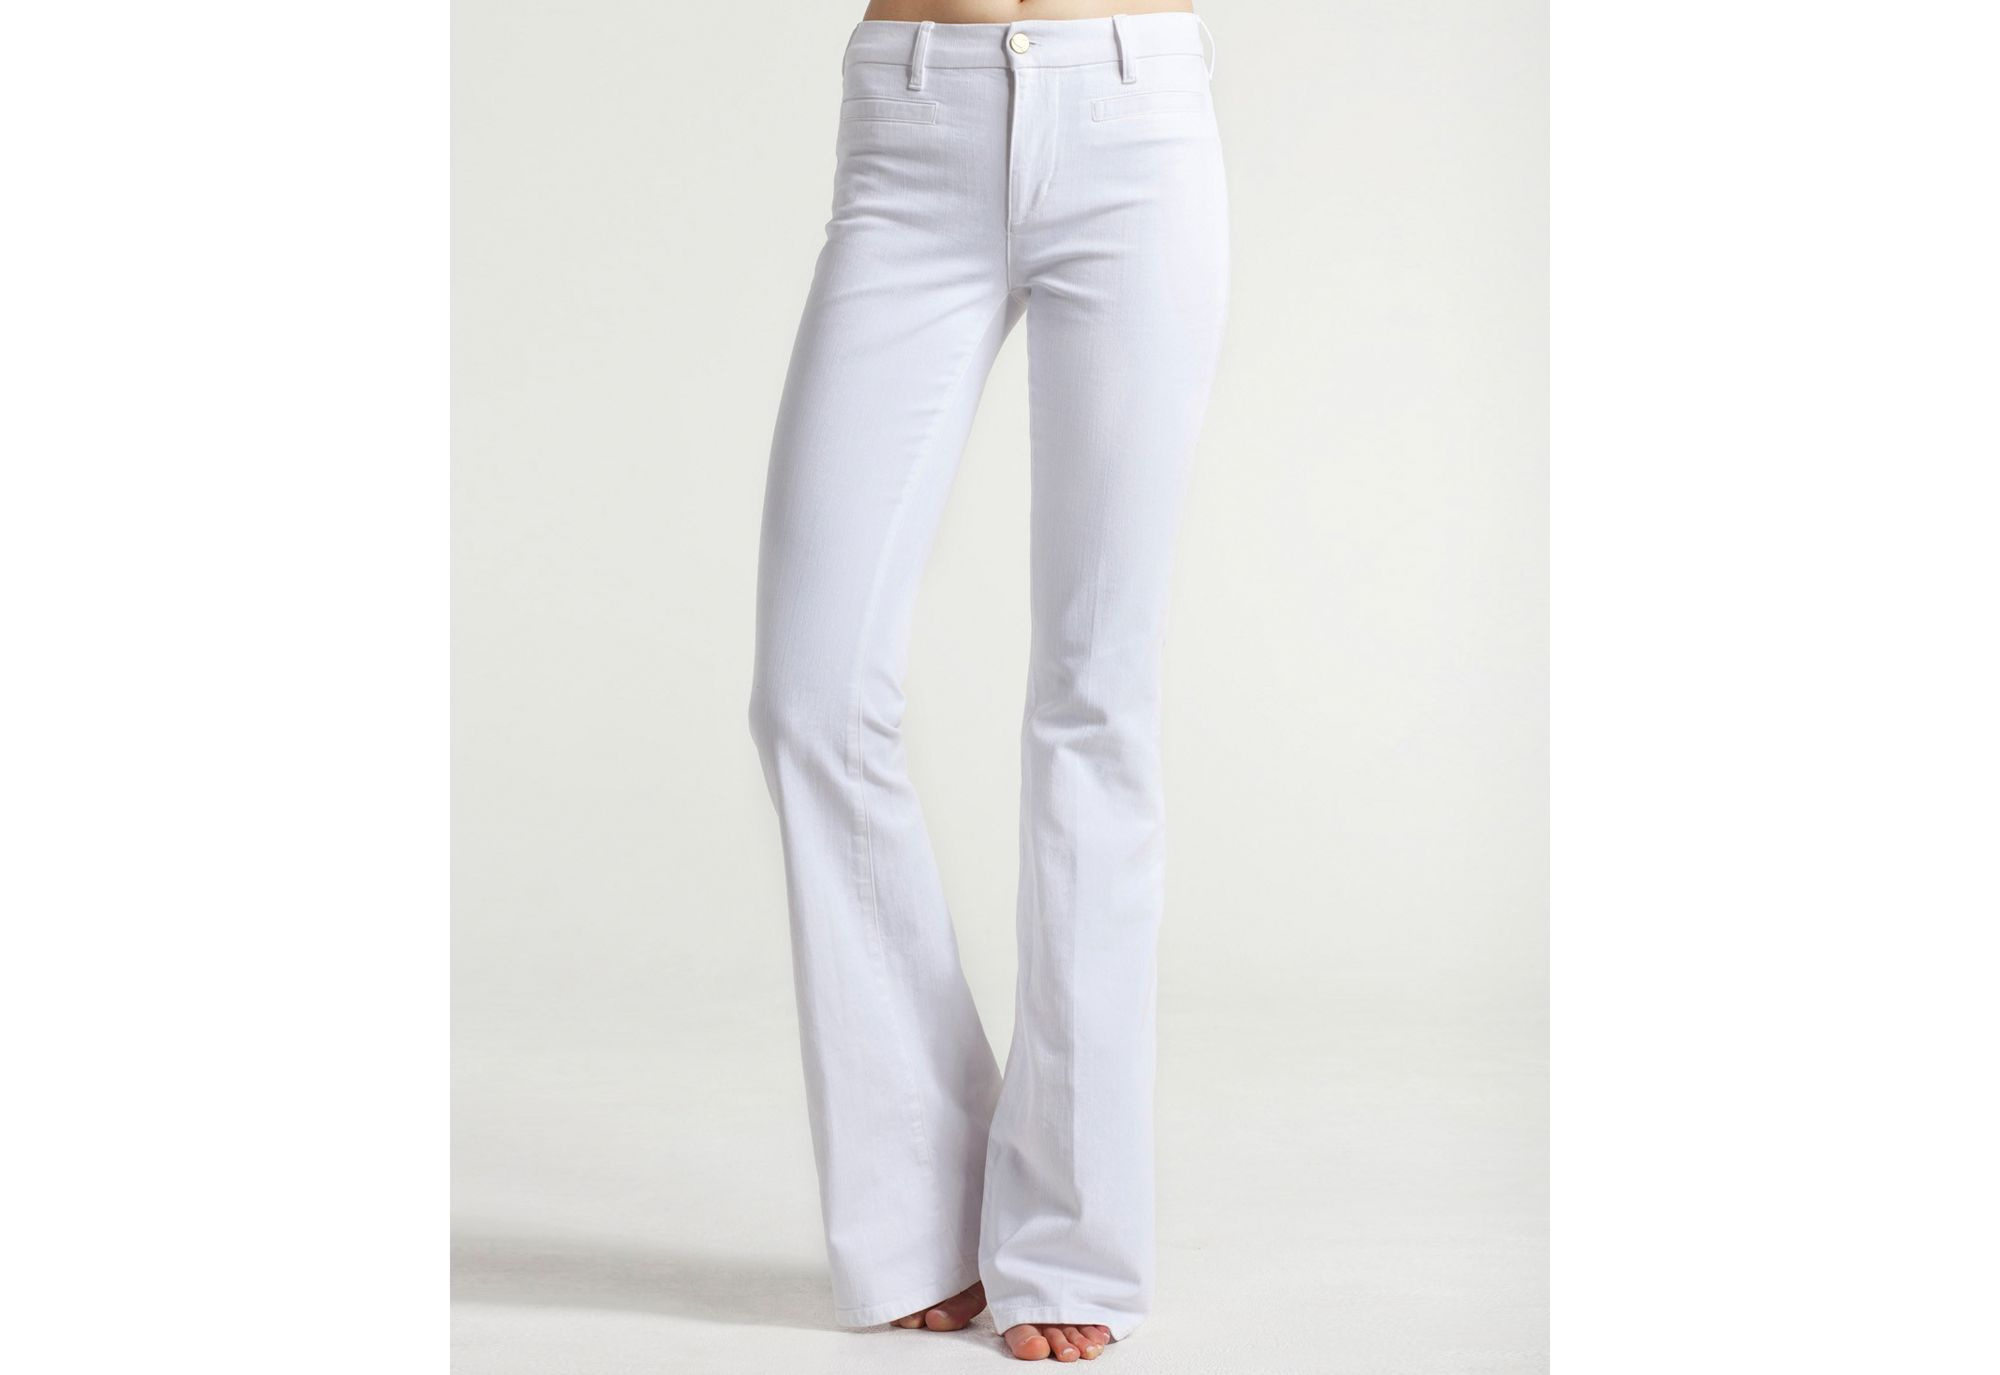 M.i.h jeans Marrakesh Midrise Kick Flare Leg Jeans in White in ...